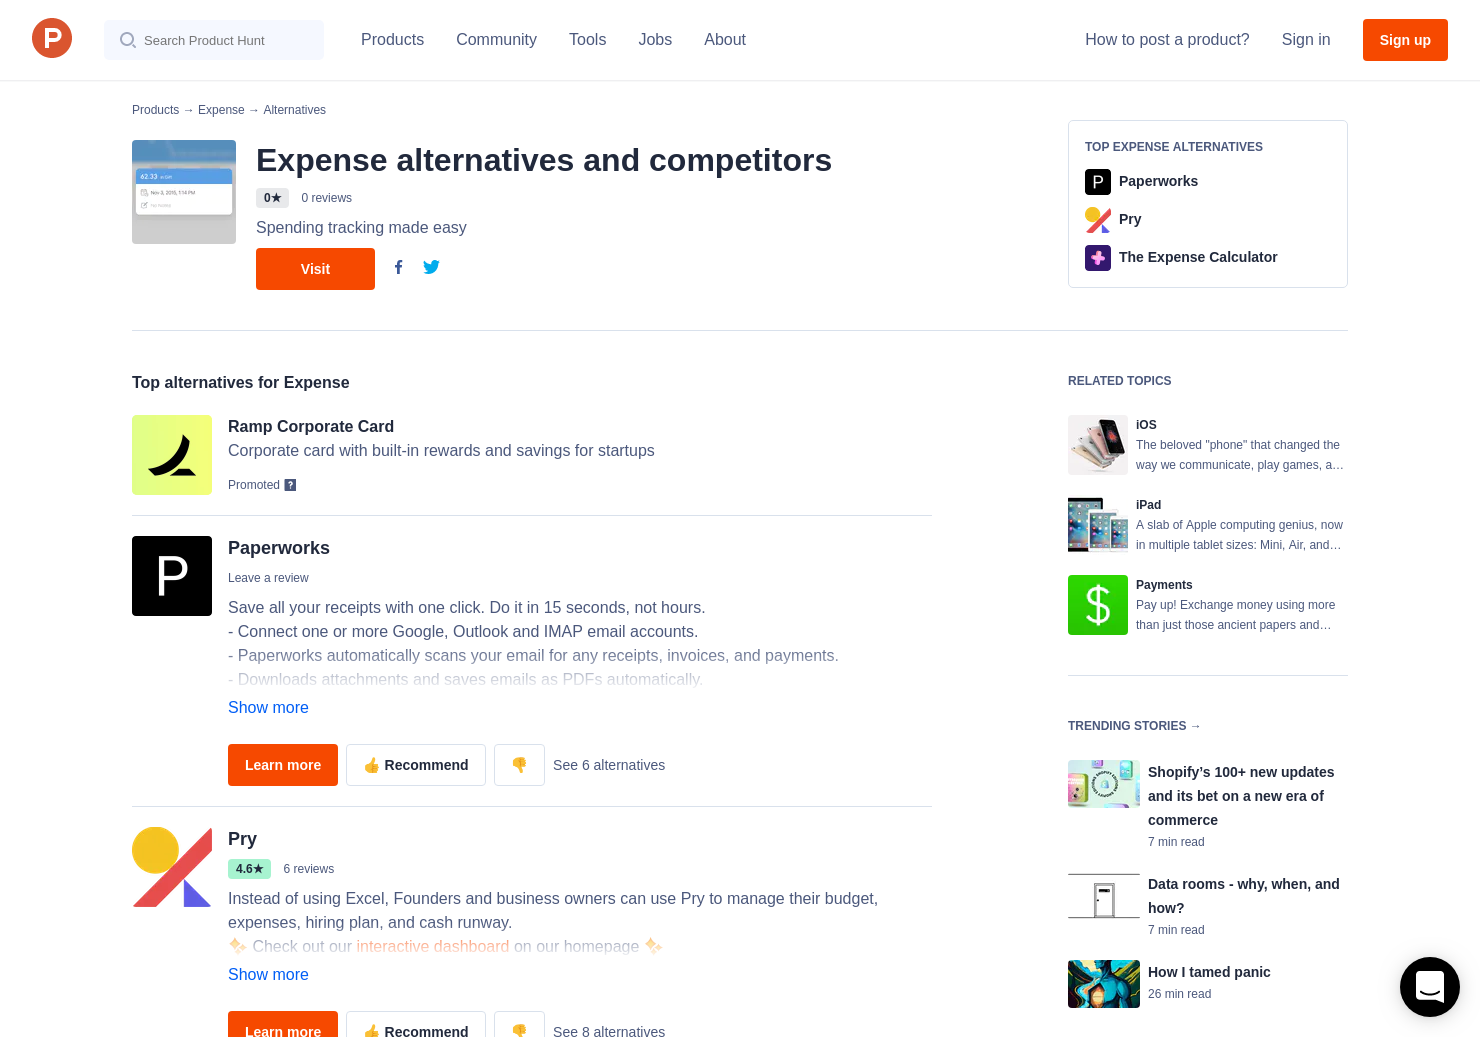 10 alternatives to expense for iphone ipad product hunt